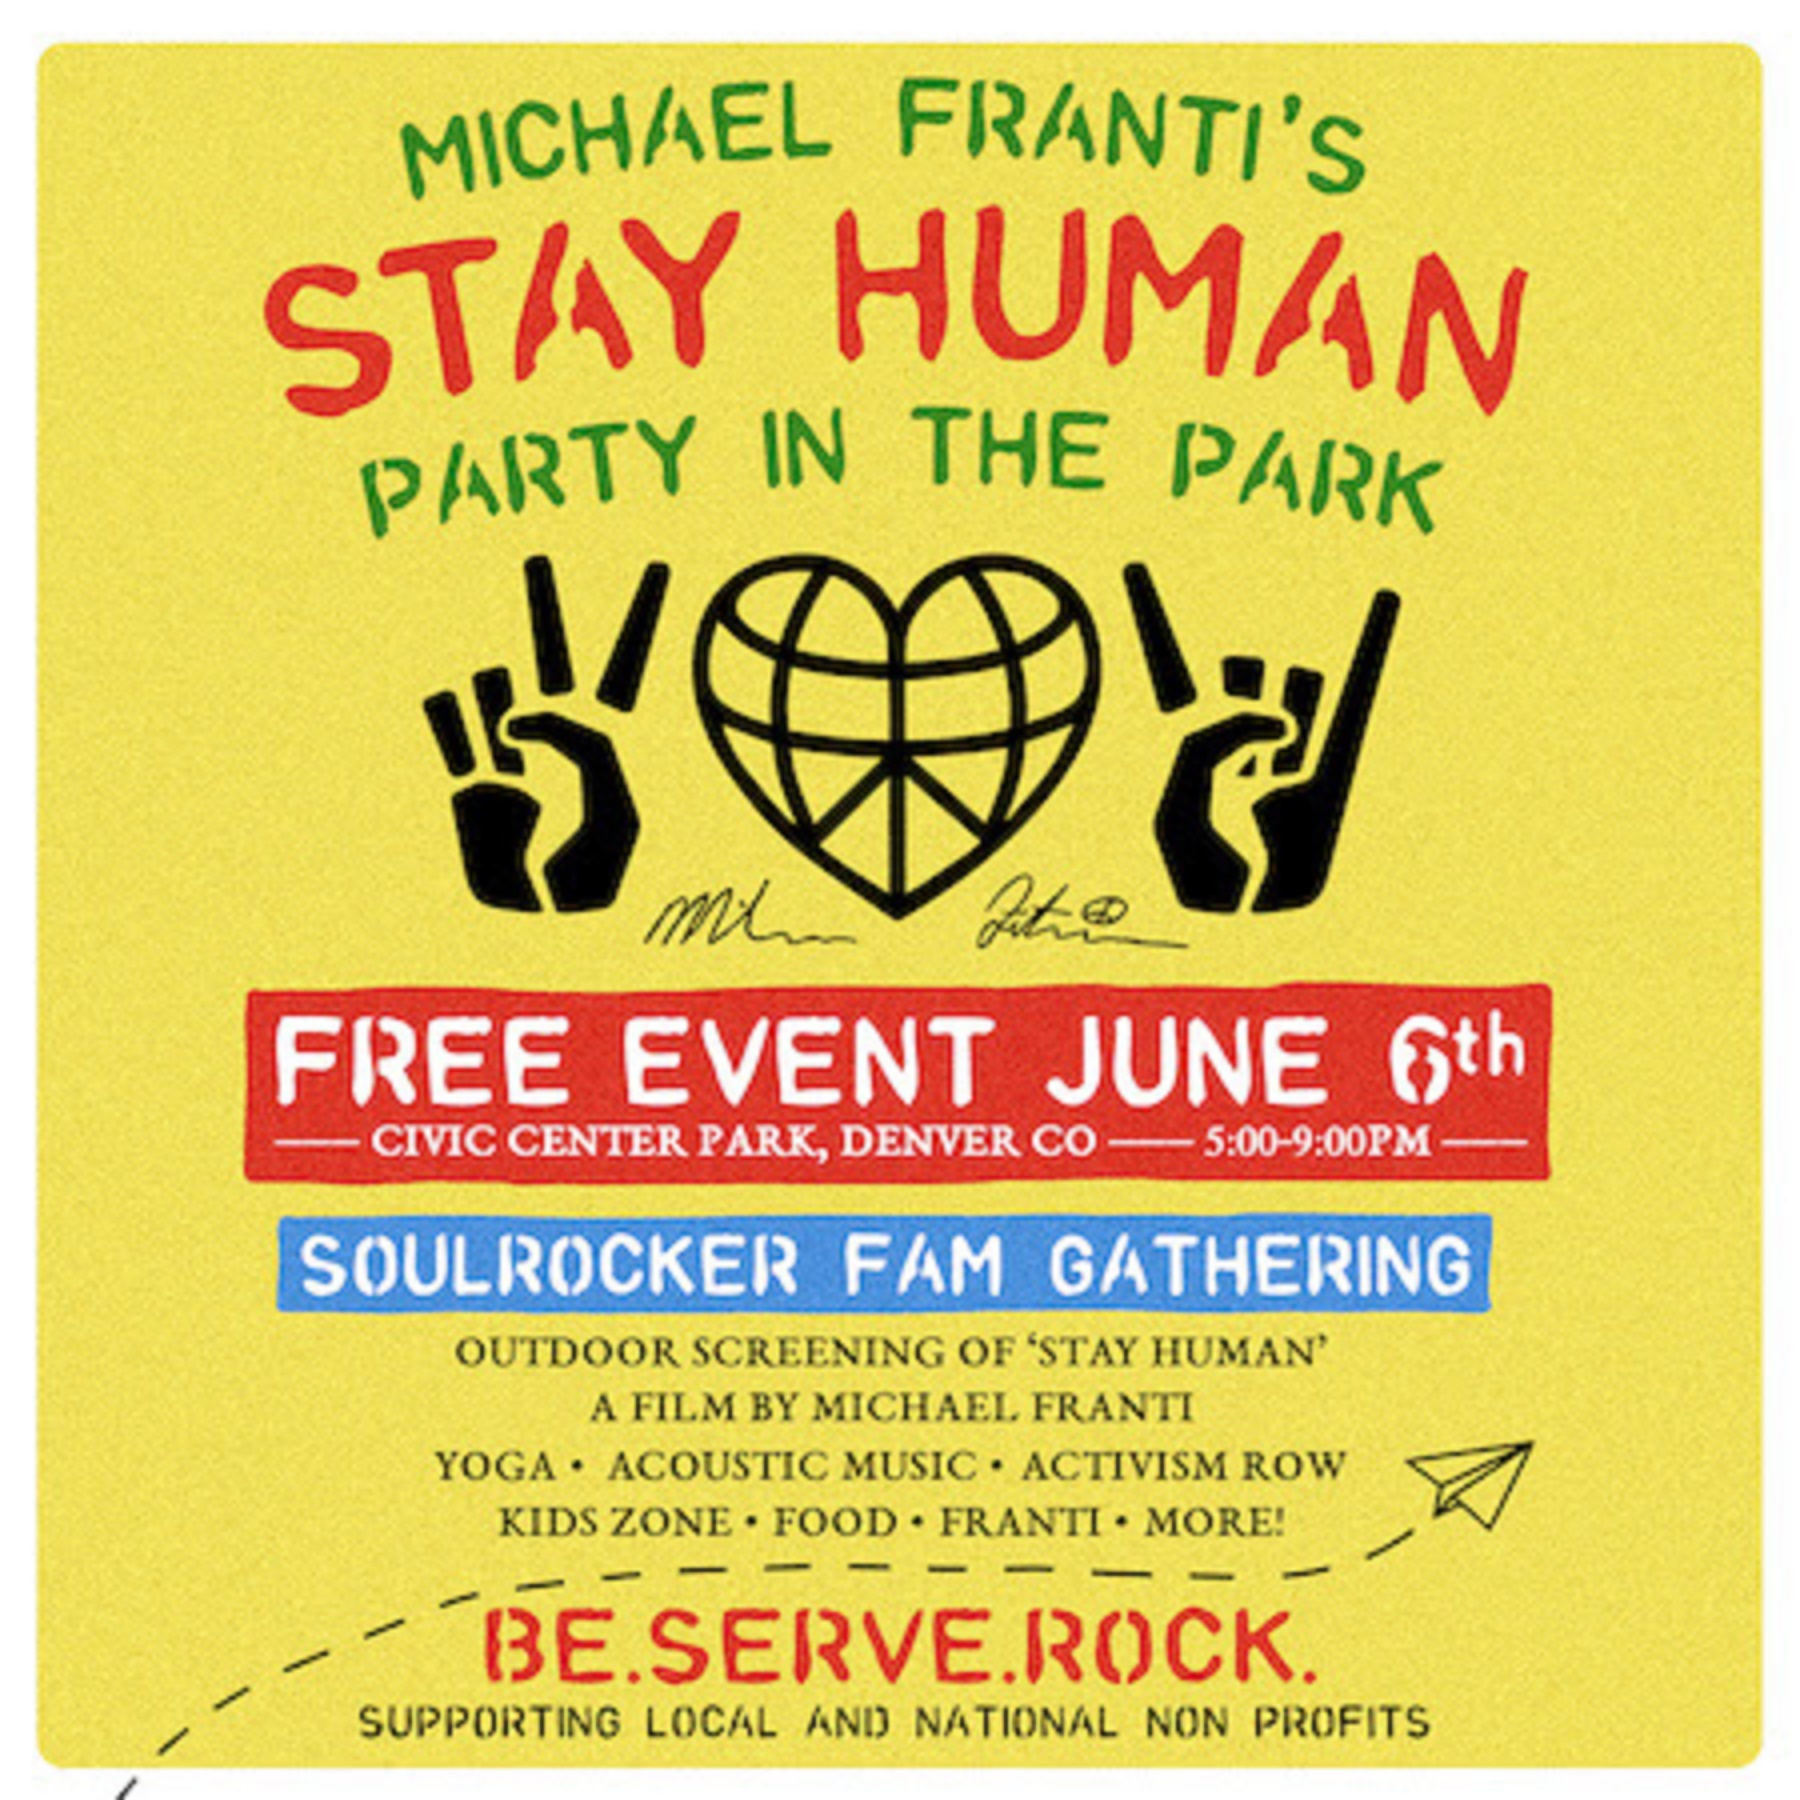 Michael Franti & Spearhead's inaugural Stay Human Party